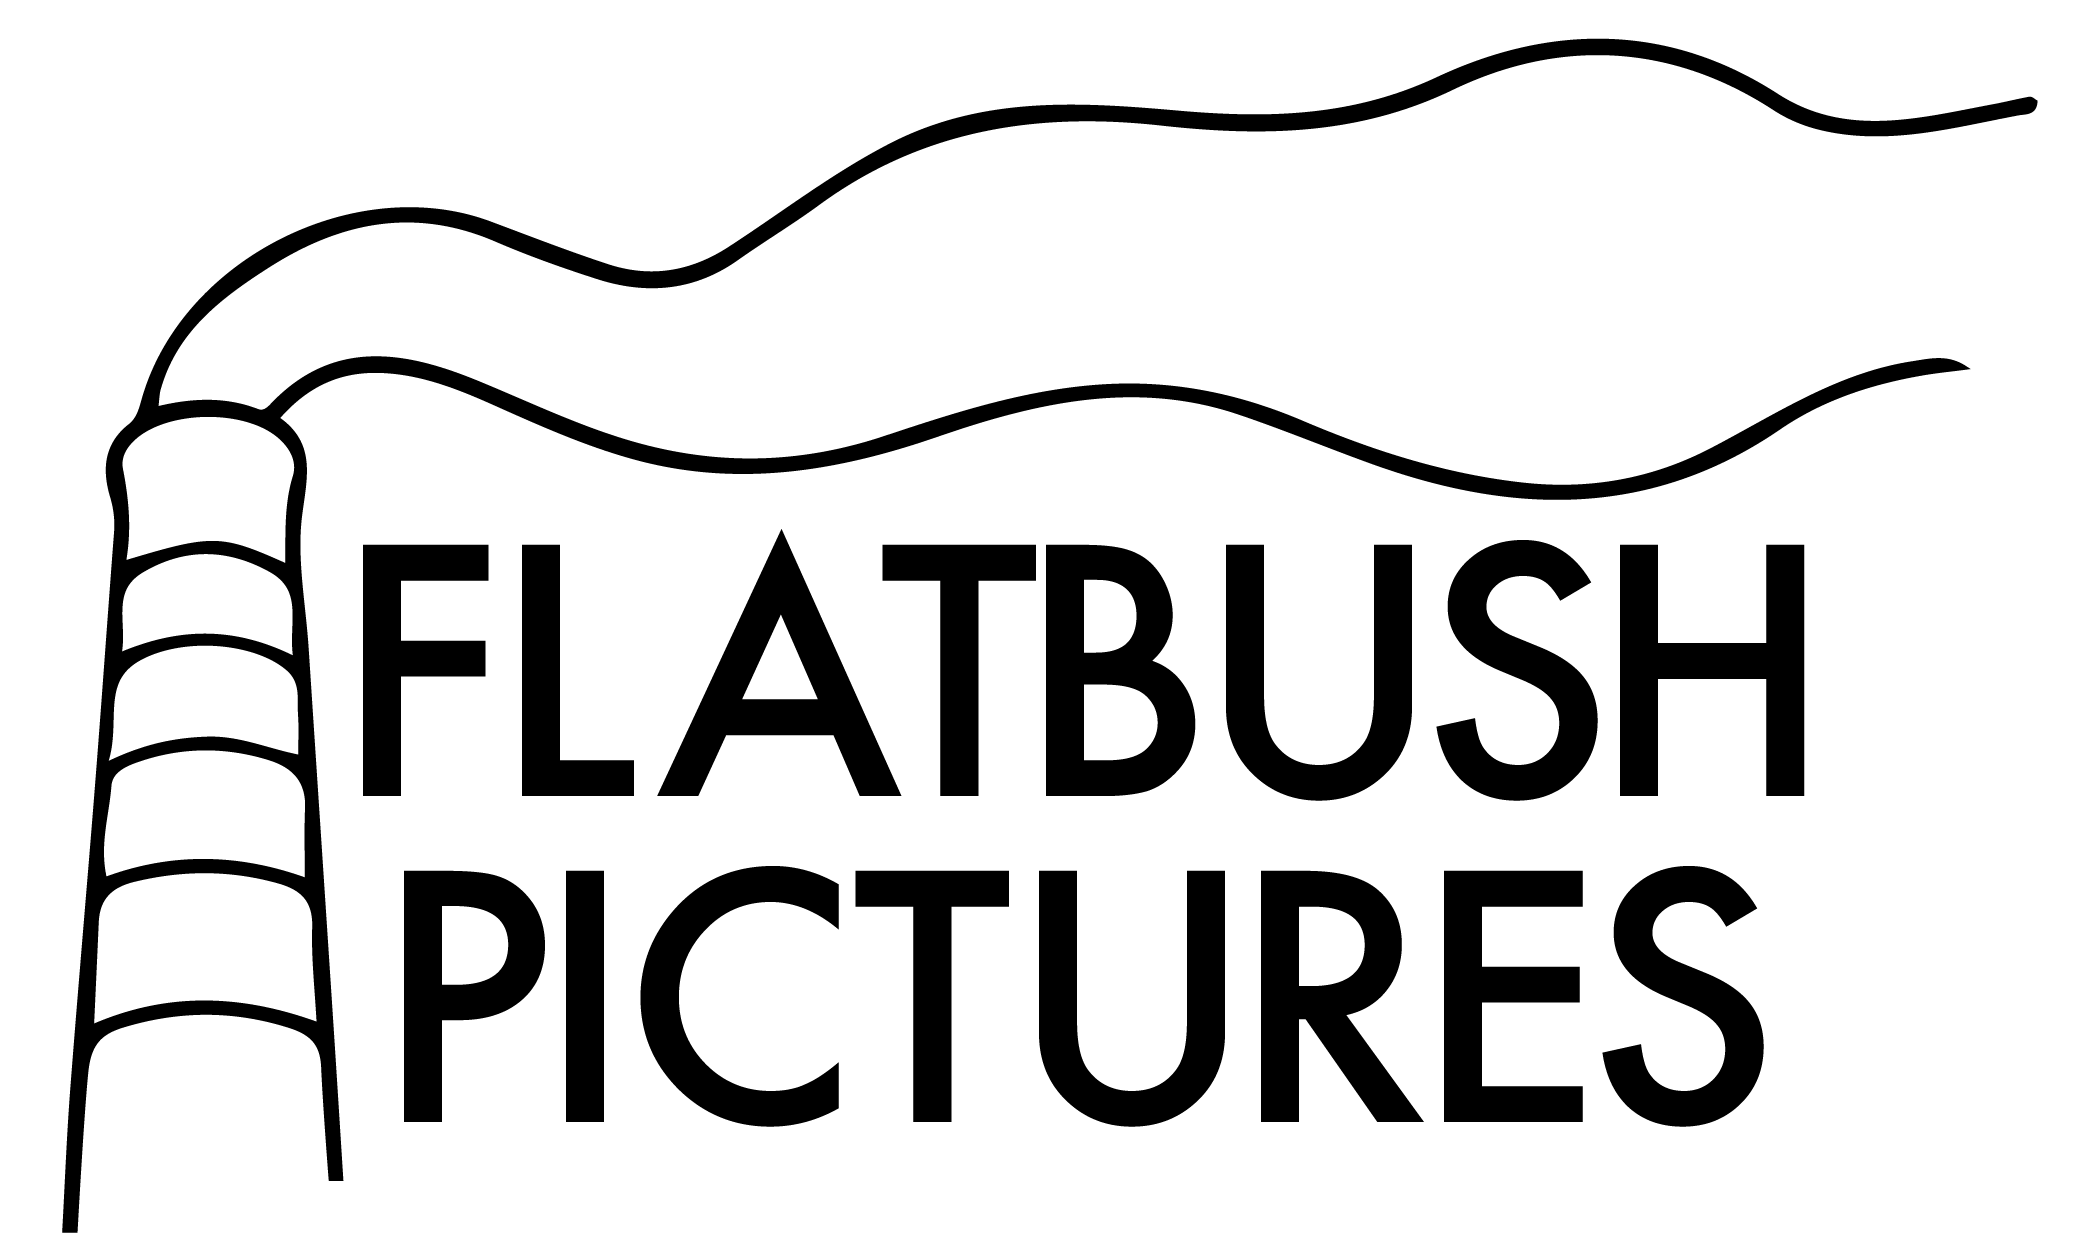 Flatbush Pictures - Flatbush Pictures is a Grand Clio, Cannes Lion, and Emmy-Winning film and content studio based in Brooklyn, New York.